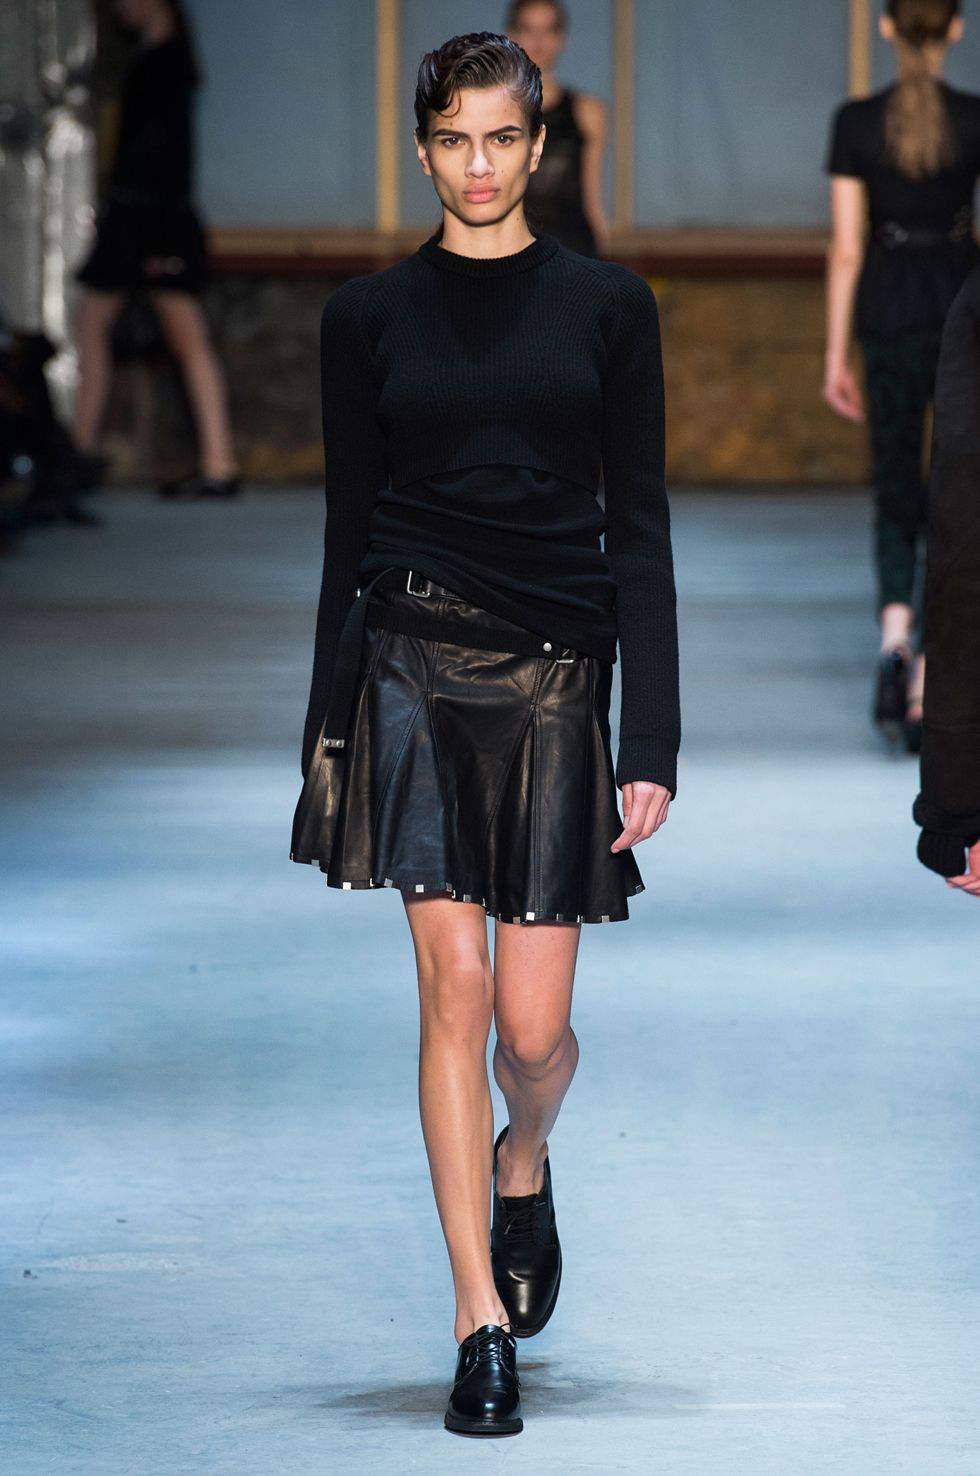 Diesel Black Gold Fall 2015 Ready-to-Wear Collection  - ELLE.com